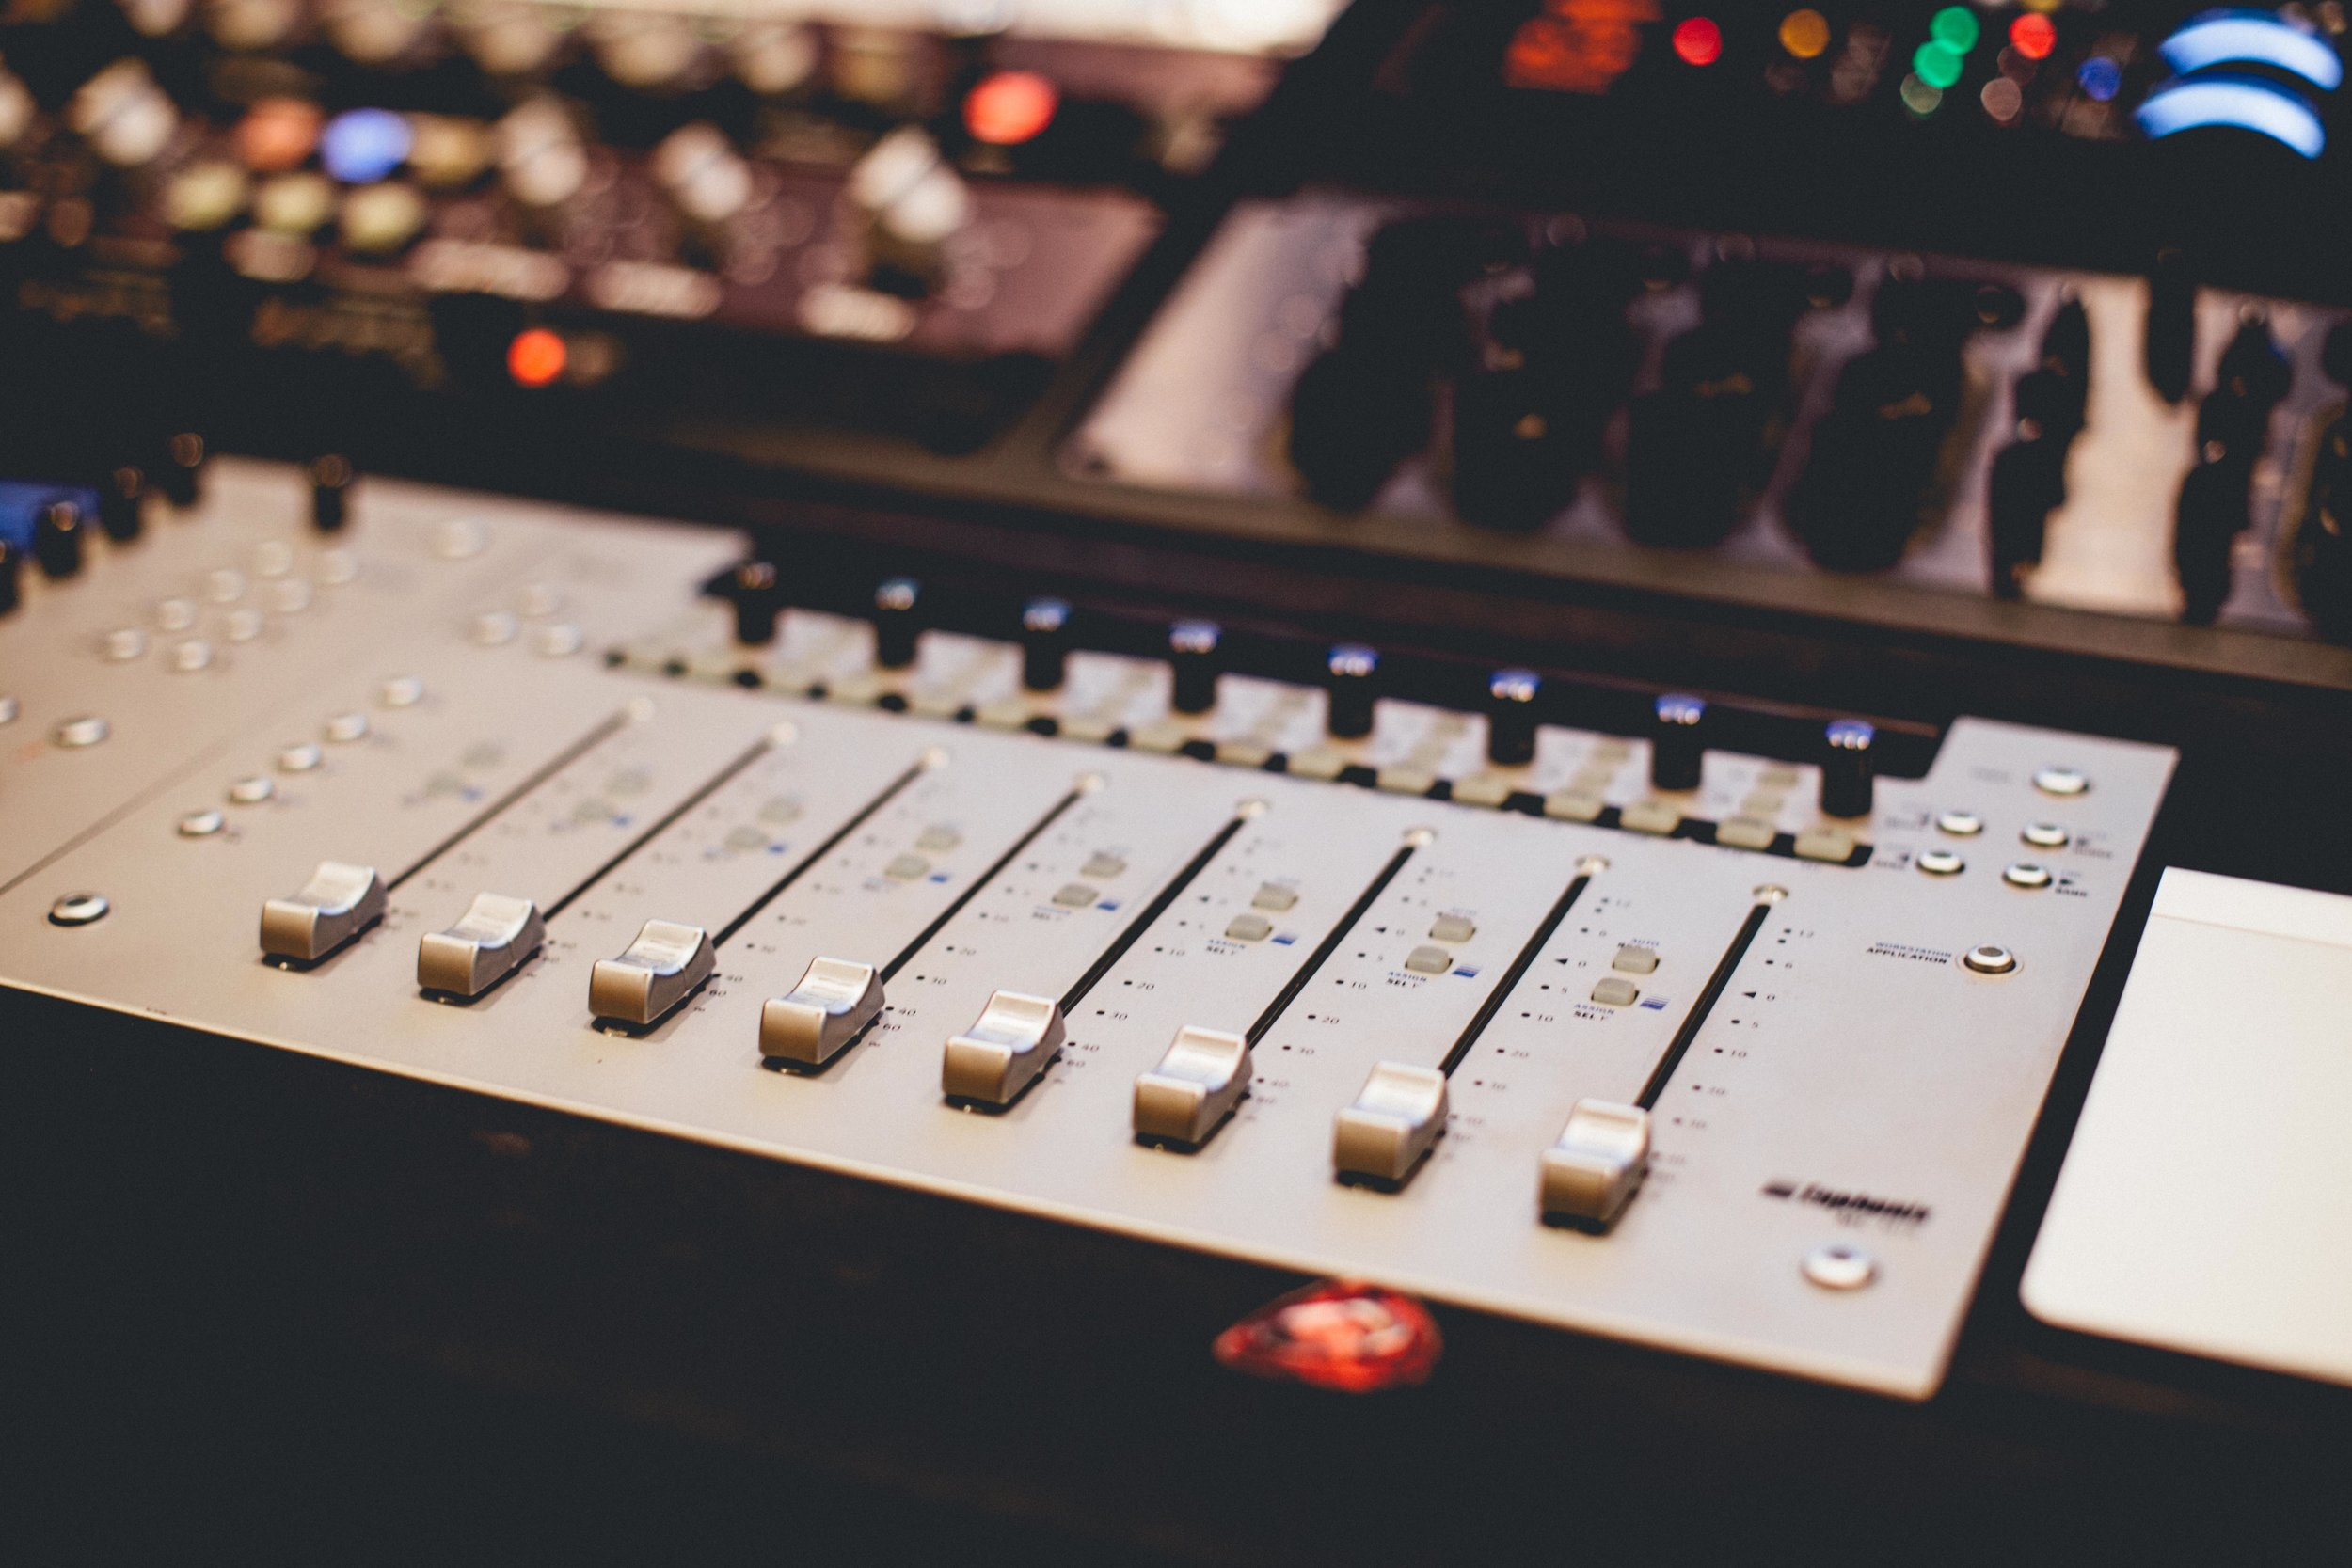 Audio Post Production London Based services